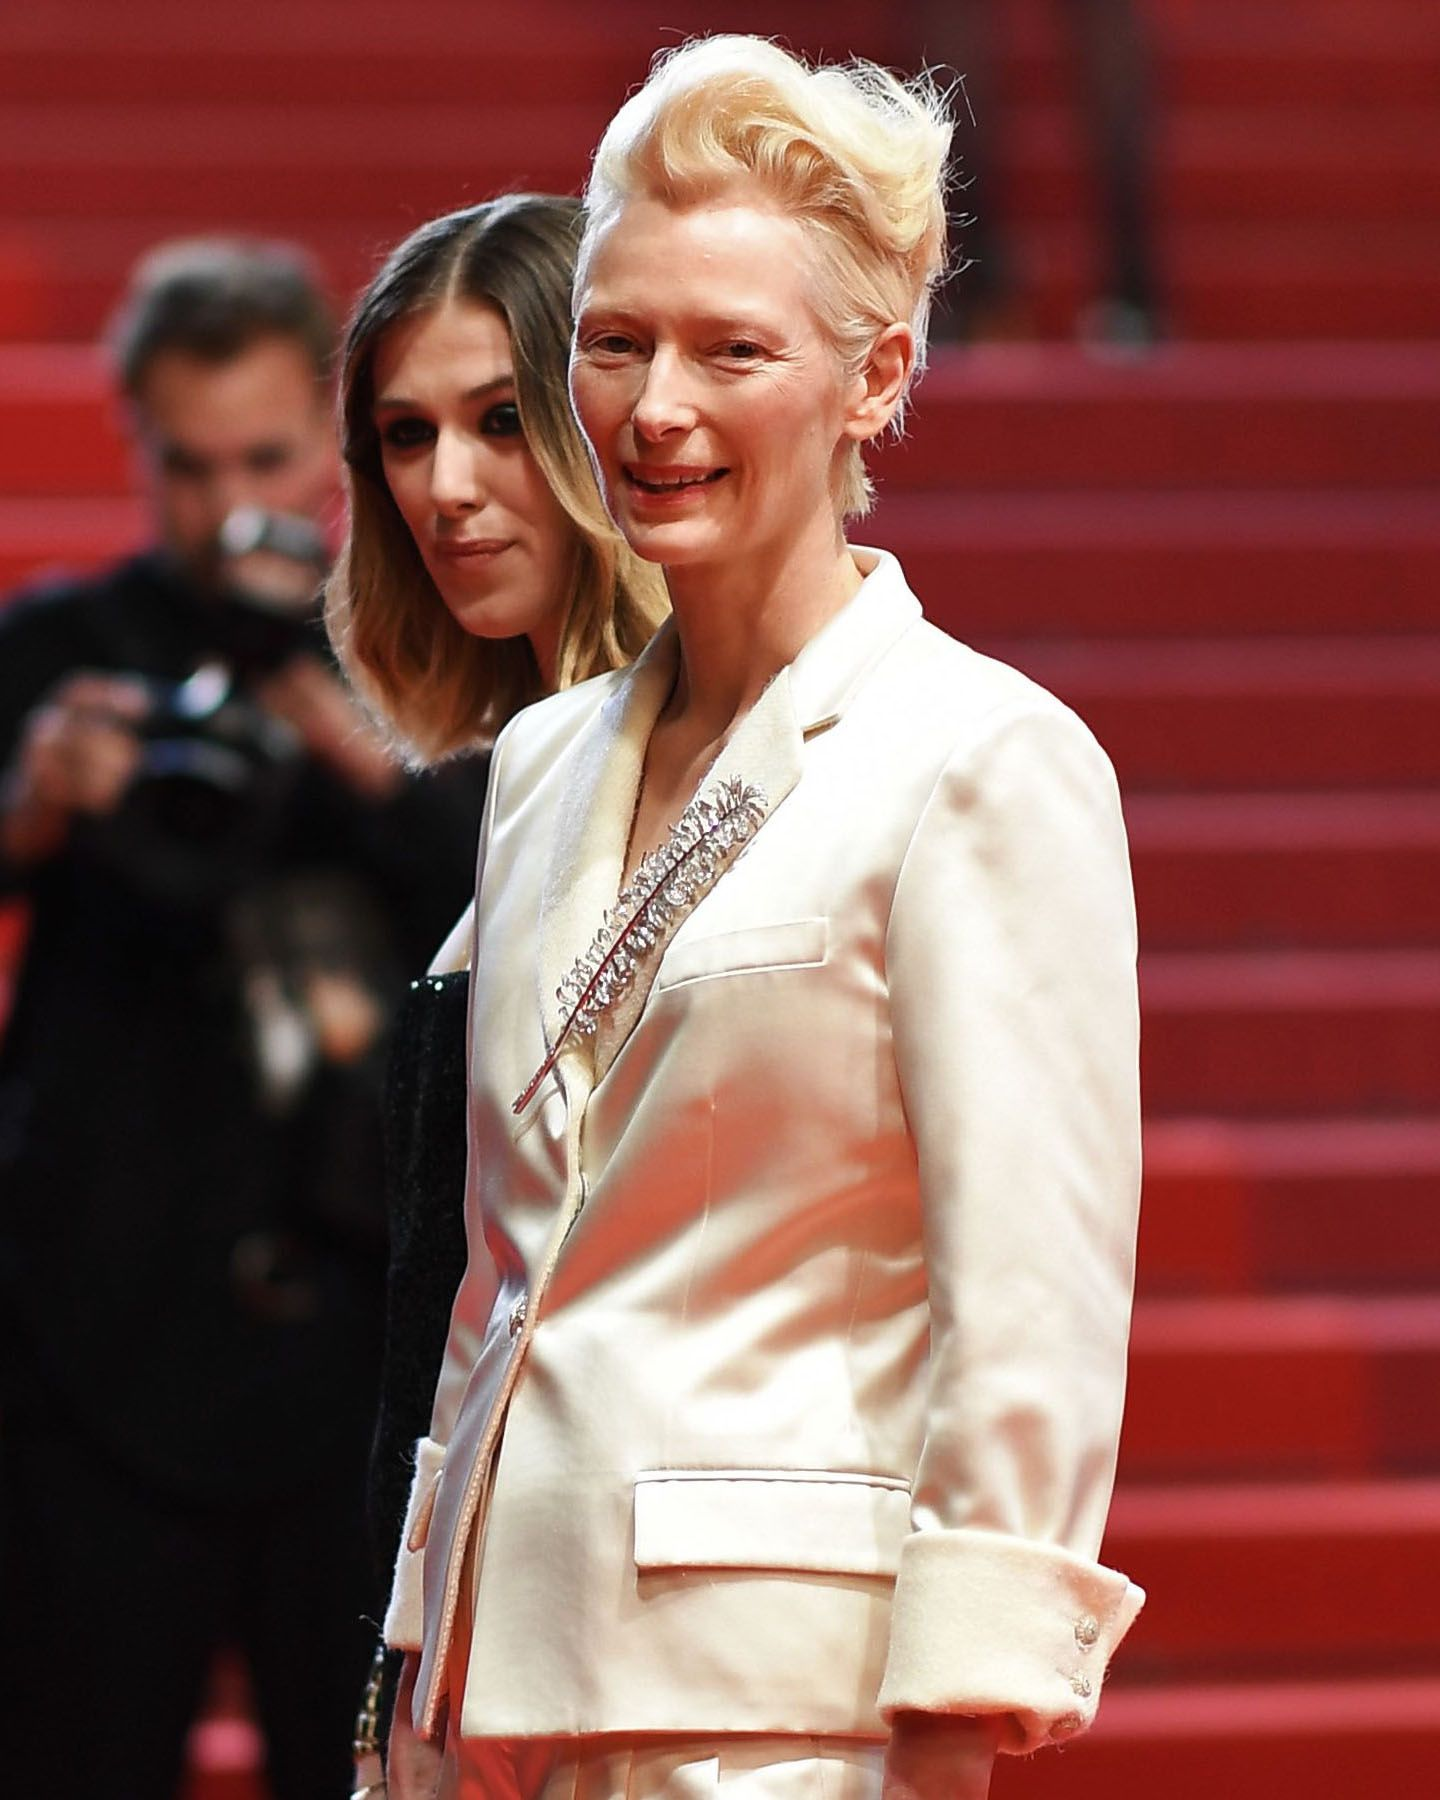 Tilda Swinton in Cannes.